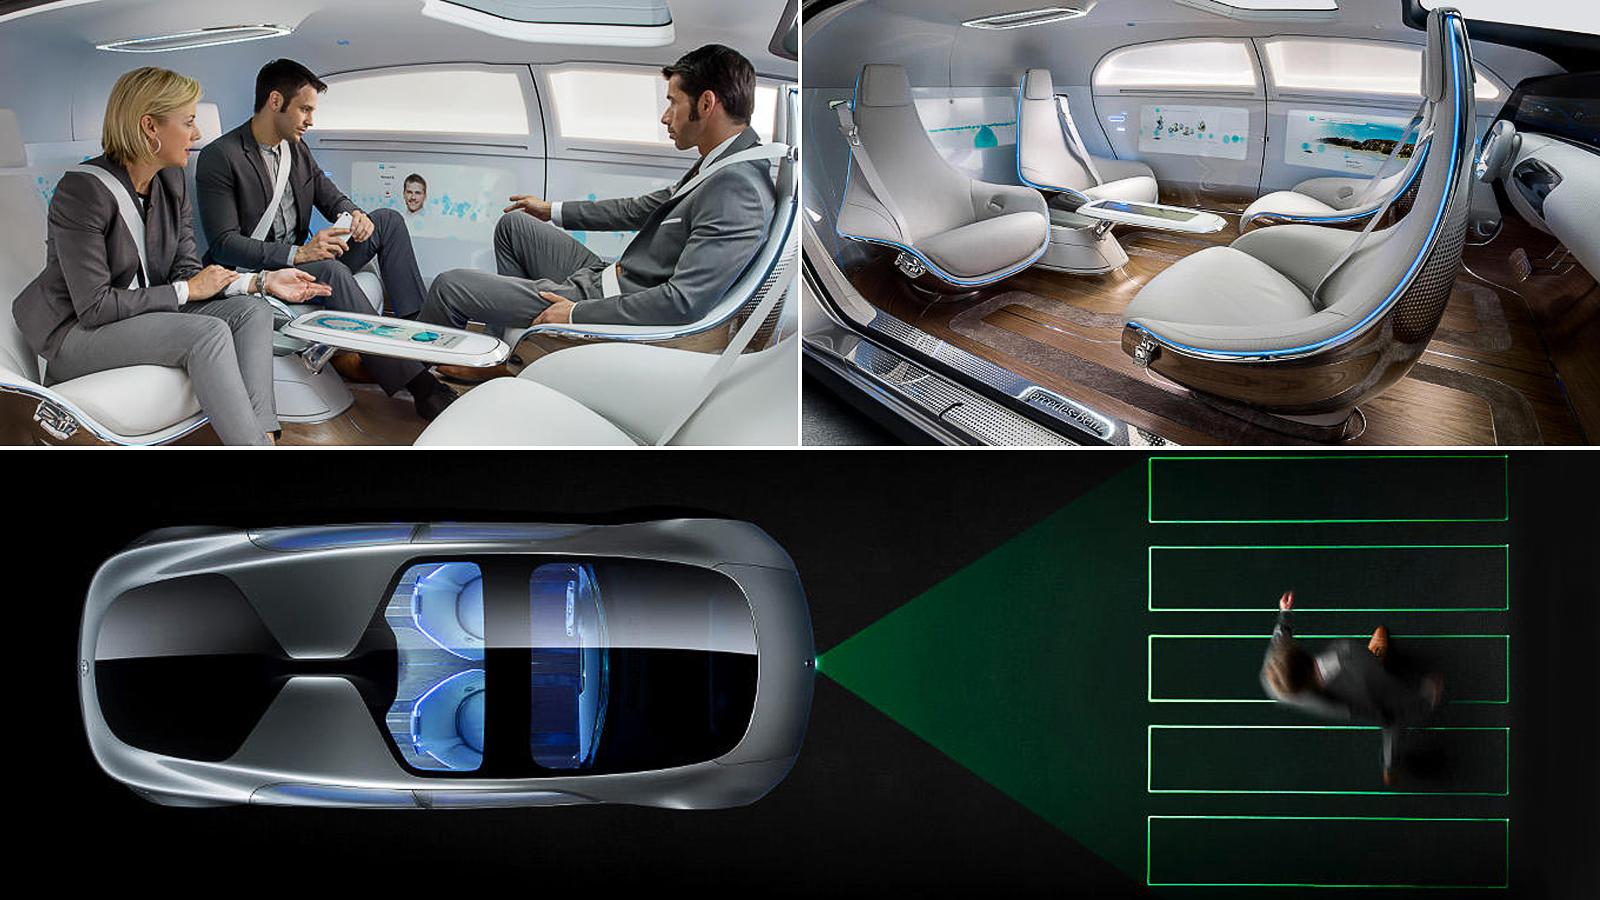 Mercedes-Benz F 015 driverless Luxury car